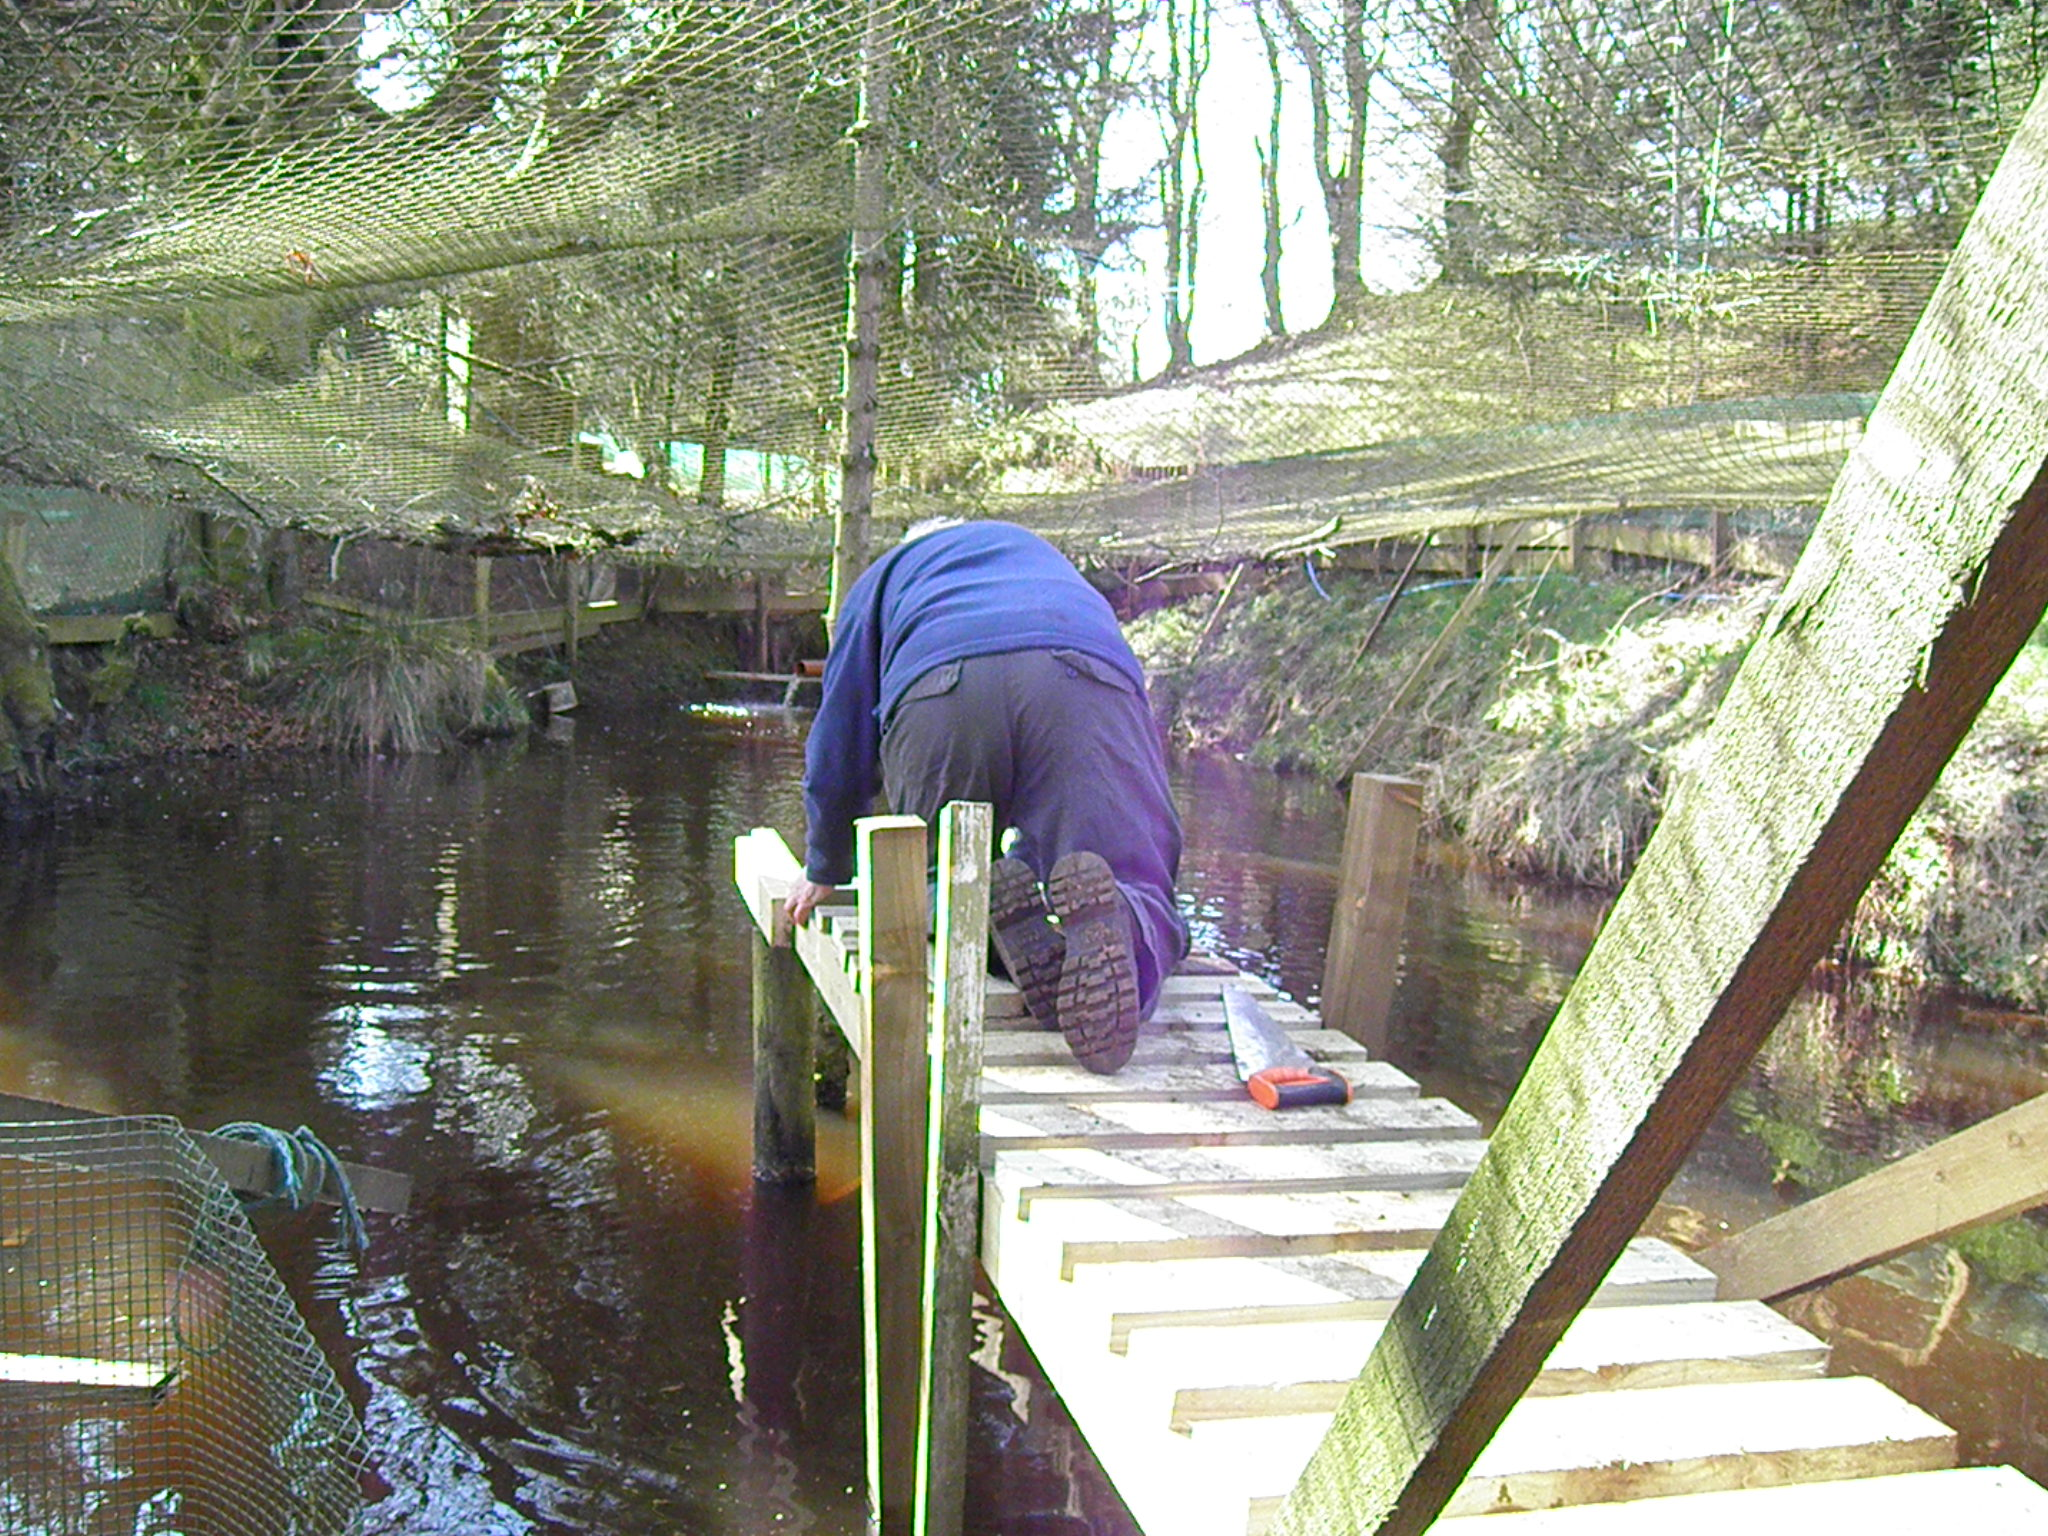 Jim working hard building a walkway in the 2 year pond.